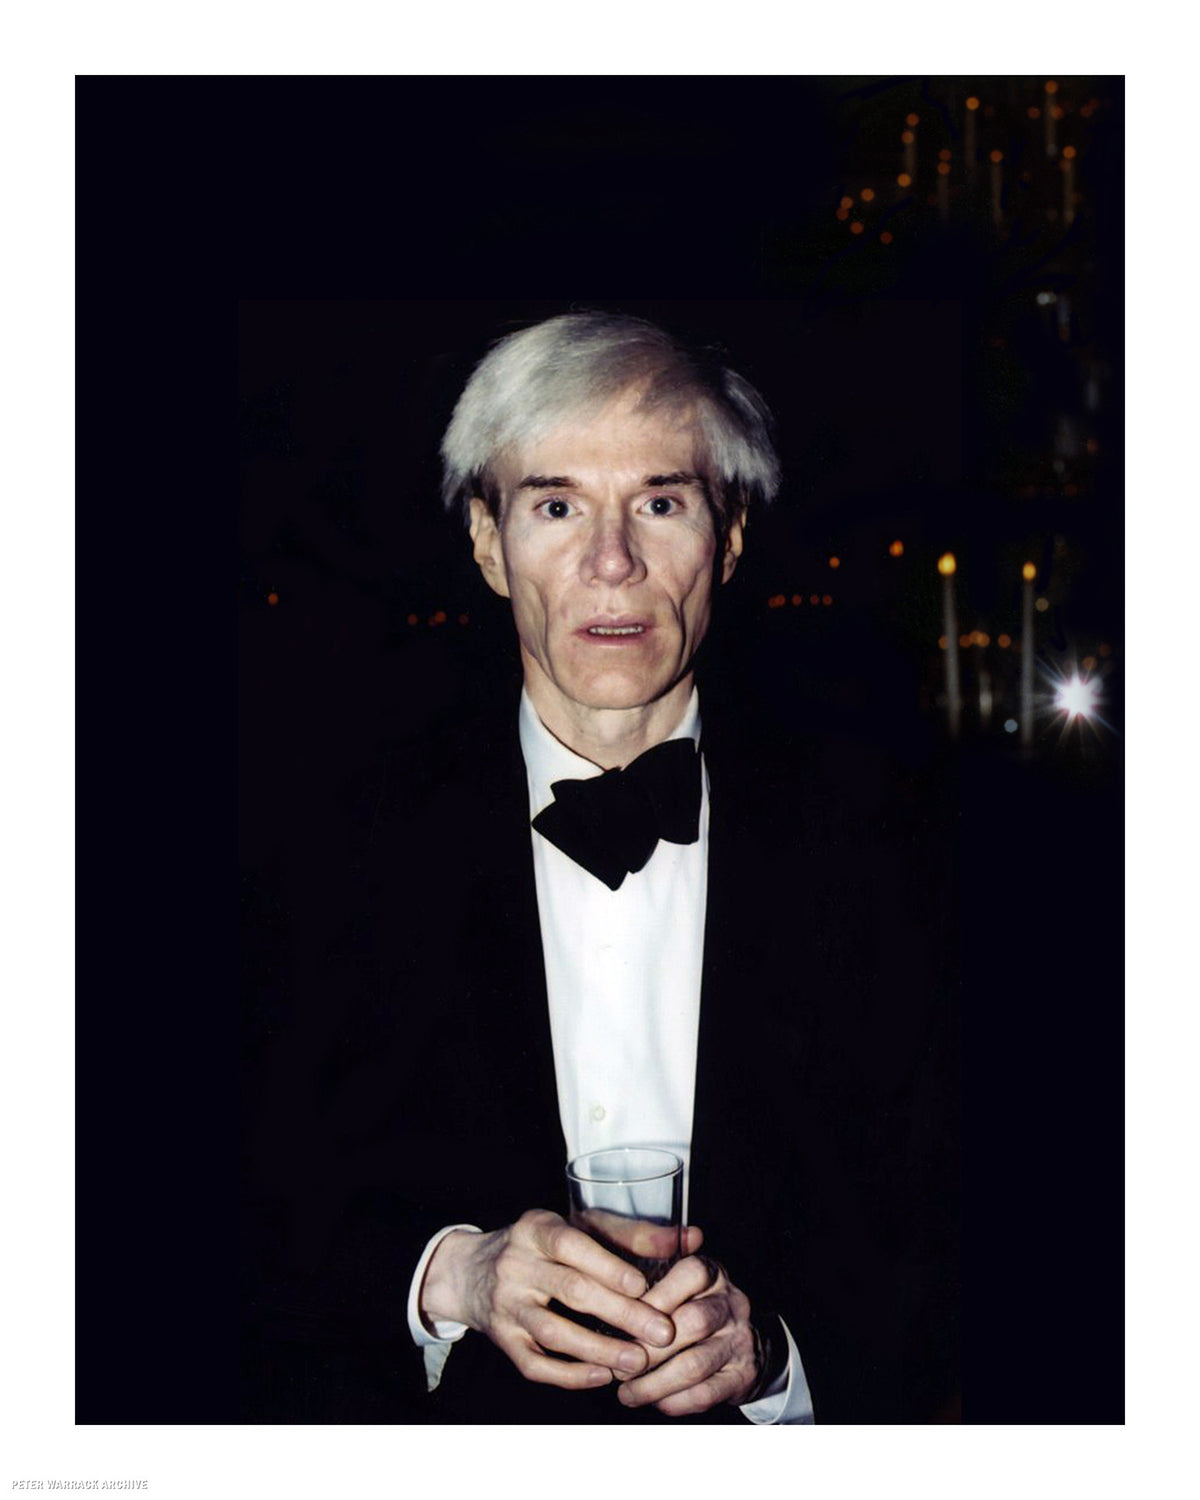 Andy Warhol (by Peter Warrack) - Limited Edition, Archival Print - 16x20""